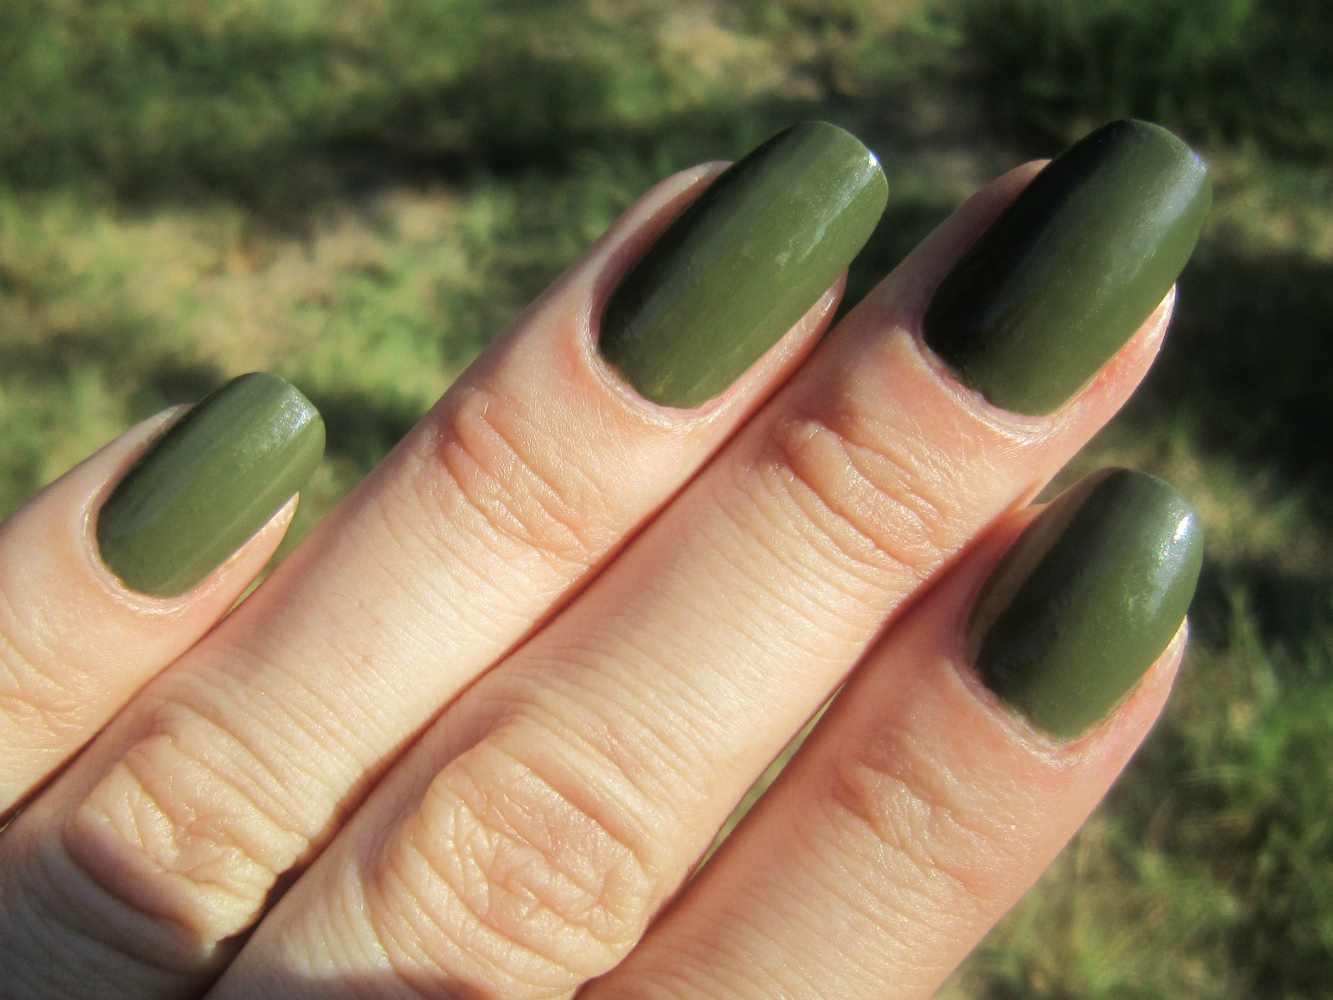 Concrete and nail polish china glaze china glaze westside warrior a gorgeous dark olive green cremefantastic formula that barely needed 2 coats not really unique anymore but a great buy nvjuhfo Gallery